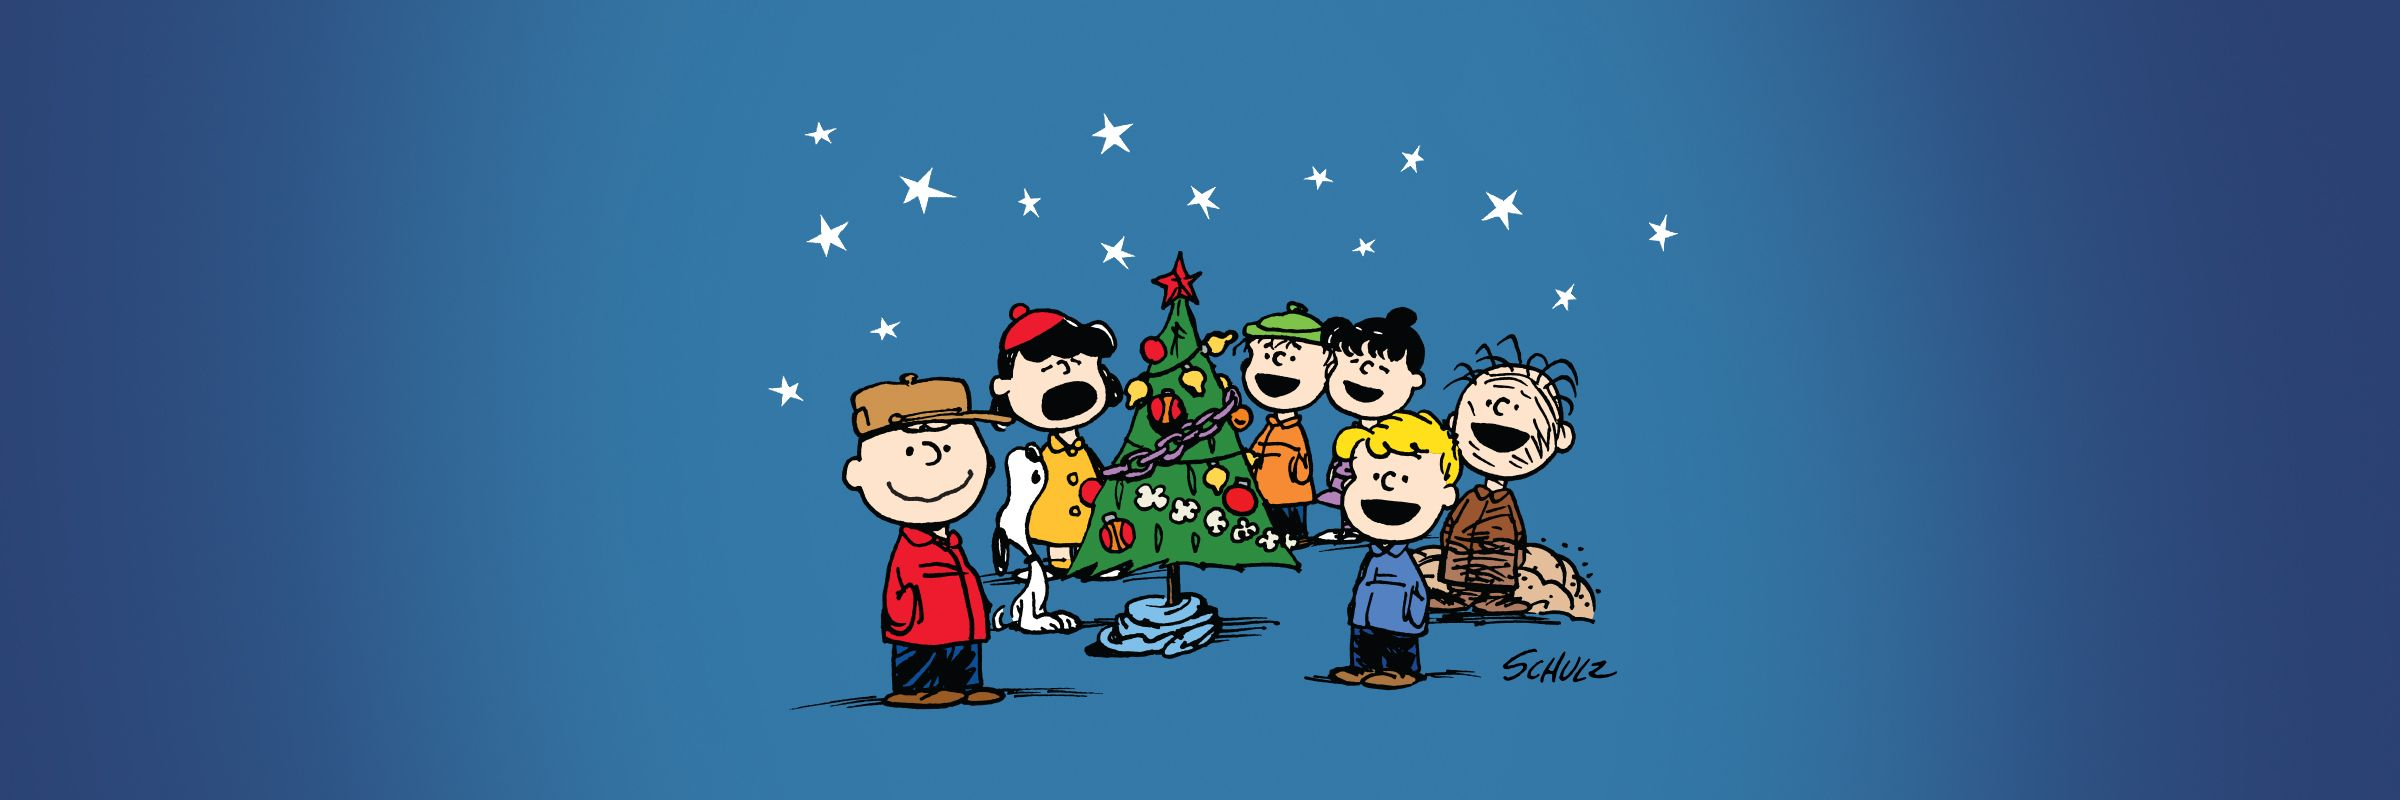 A Charlie Brown Christmas Deluxe Edition Full Movie